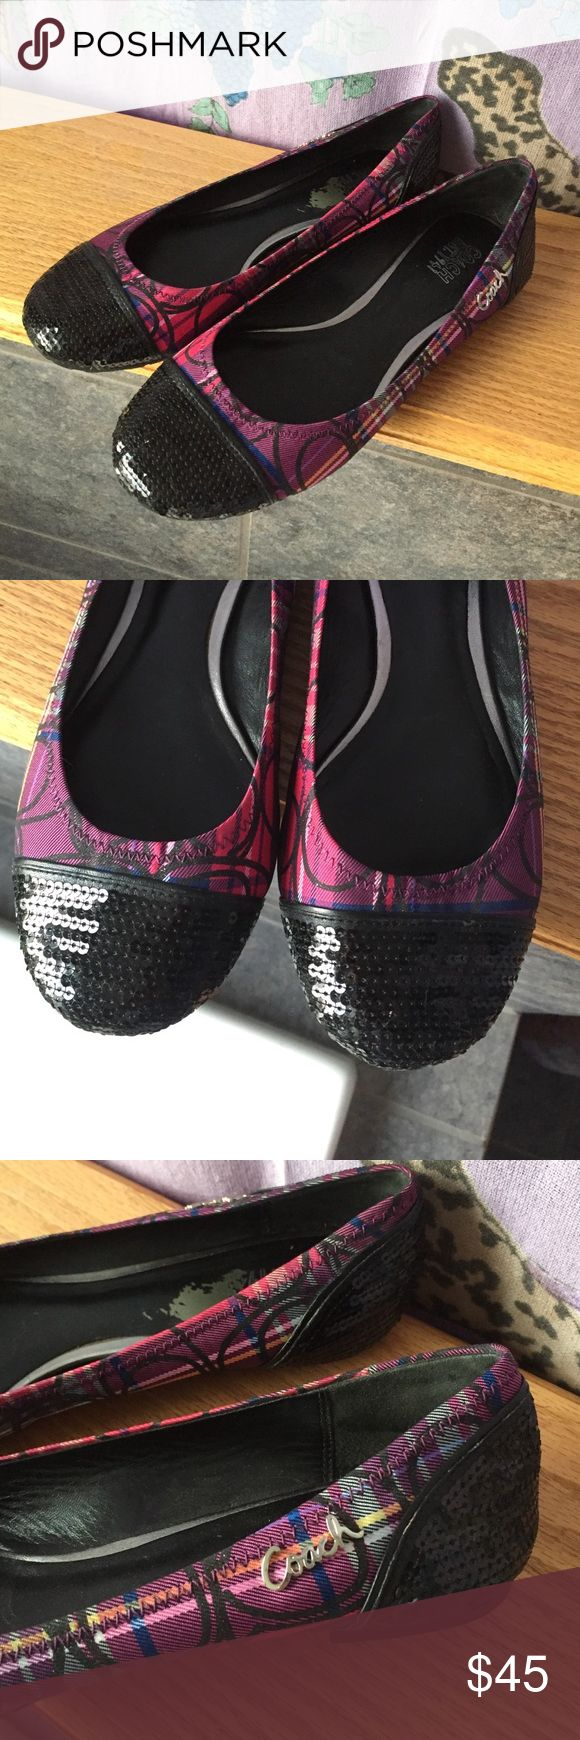 Coach flats Hardly ever worn! Super cute Coach flats with sequin toes and pink and purple plaid pattern. Coach Shoes Flats & Loafers